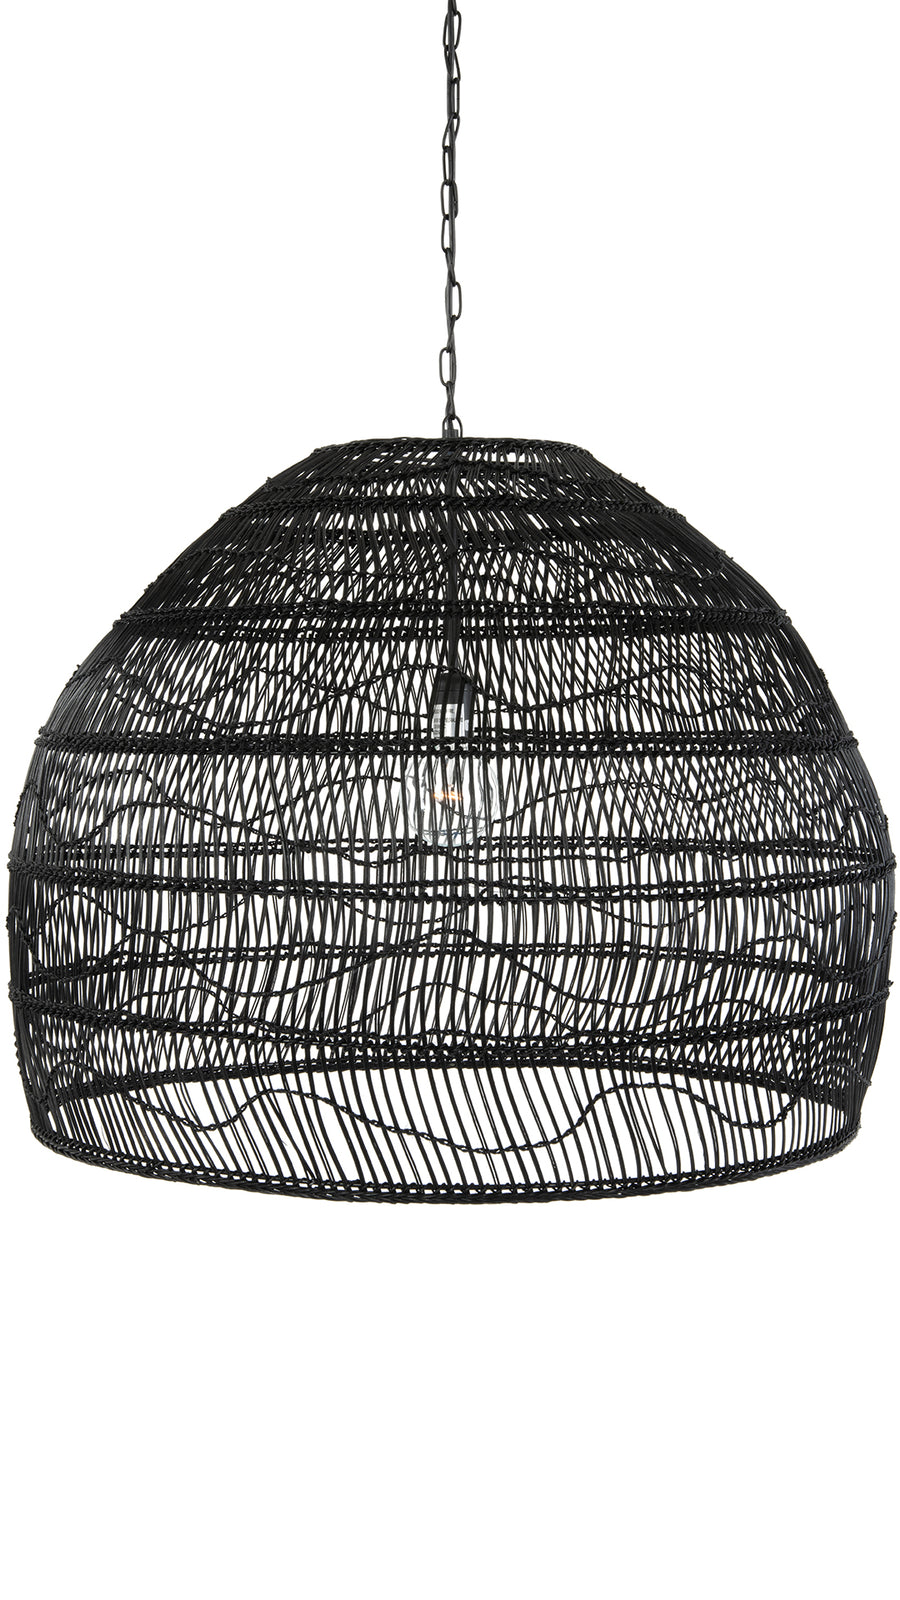 Contemporary Pendant Lights Made From Seashells Or Woven Materials